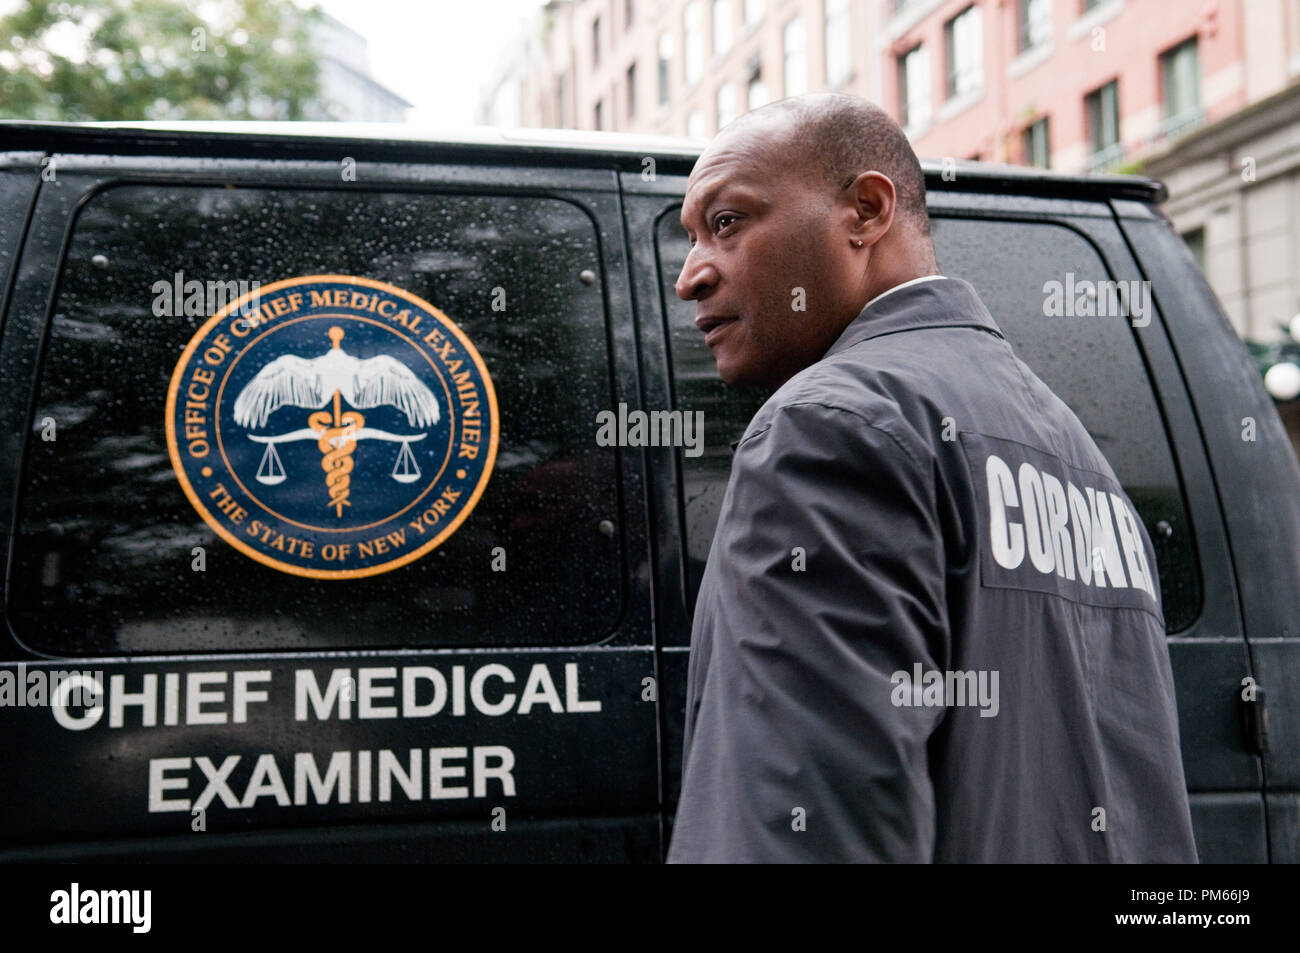 """(L-r) TONY TODD as Bludworth in New Line Cinema's horror film """"FINAL DESTINATION 5,"""" a Warner Bros. Pictures release. - Stock Image"""